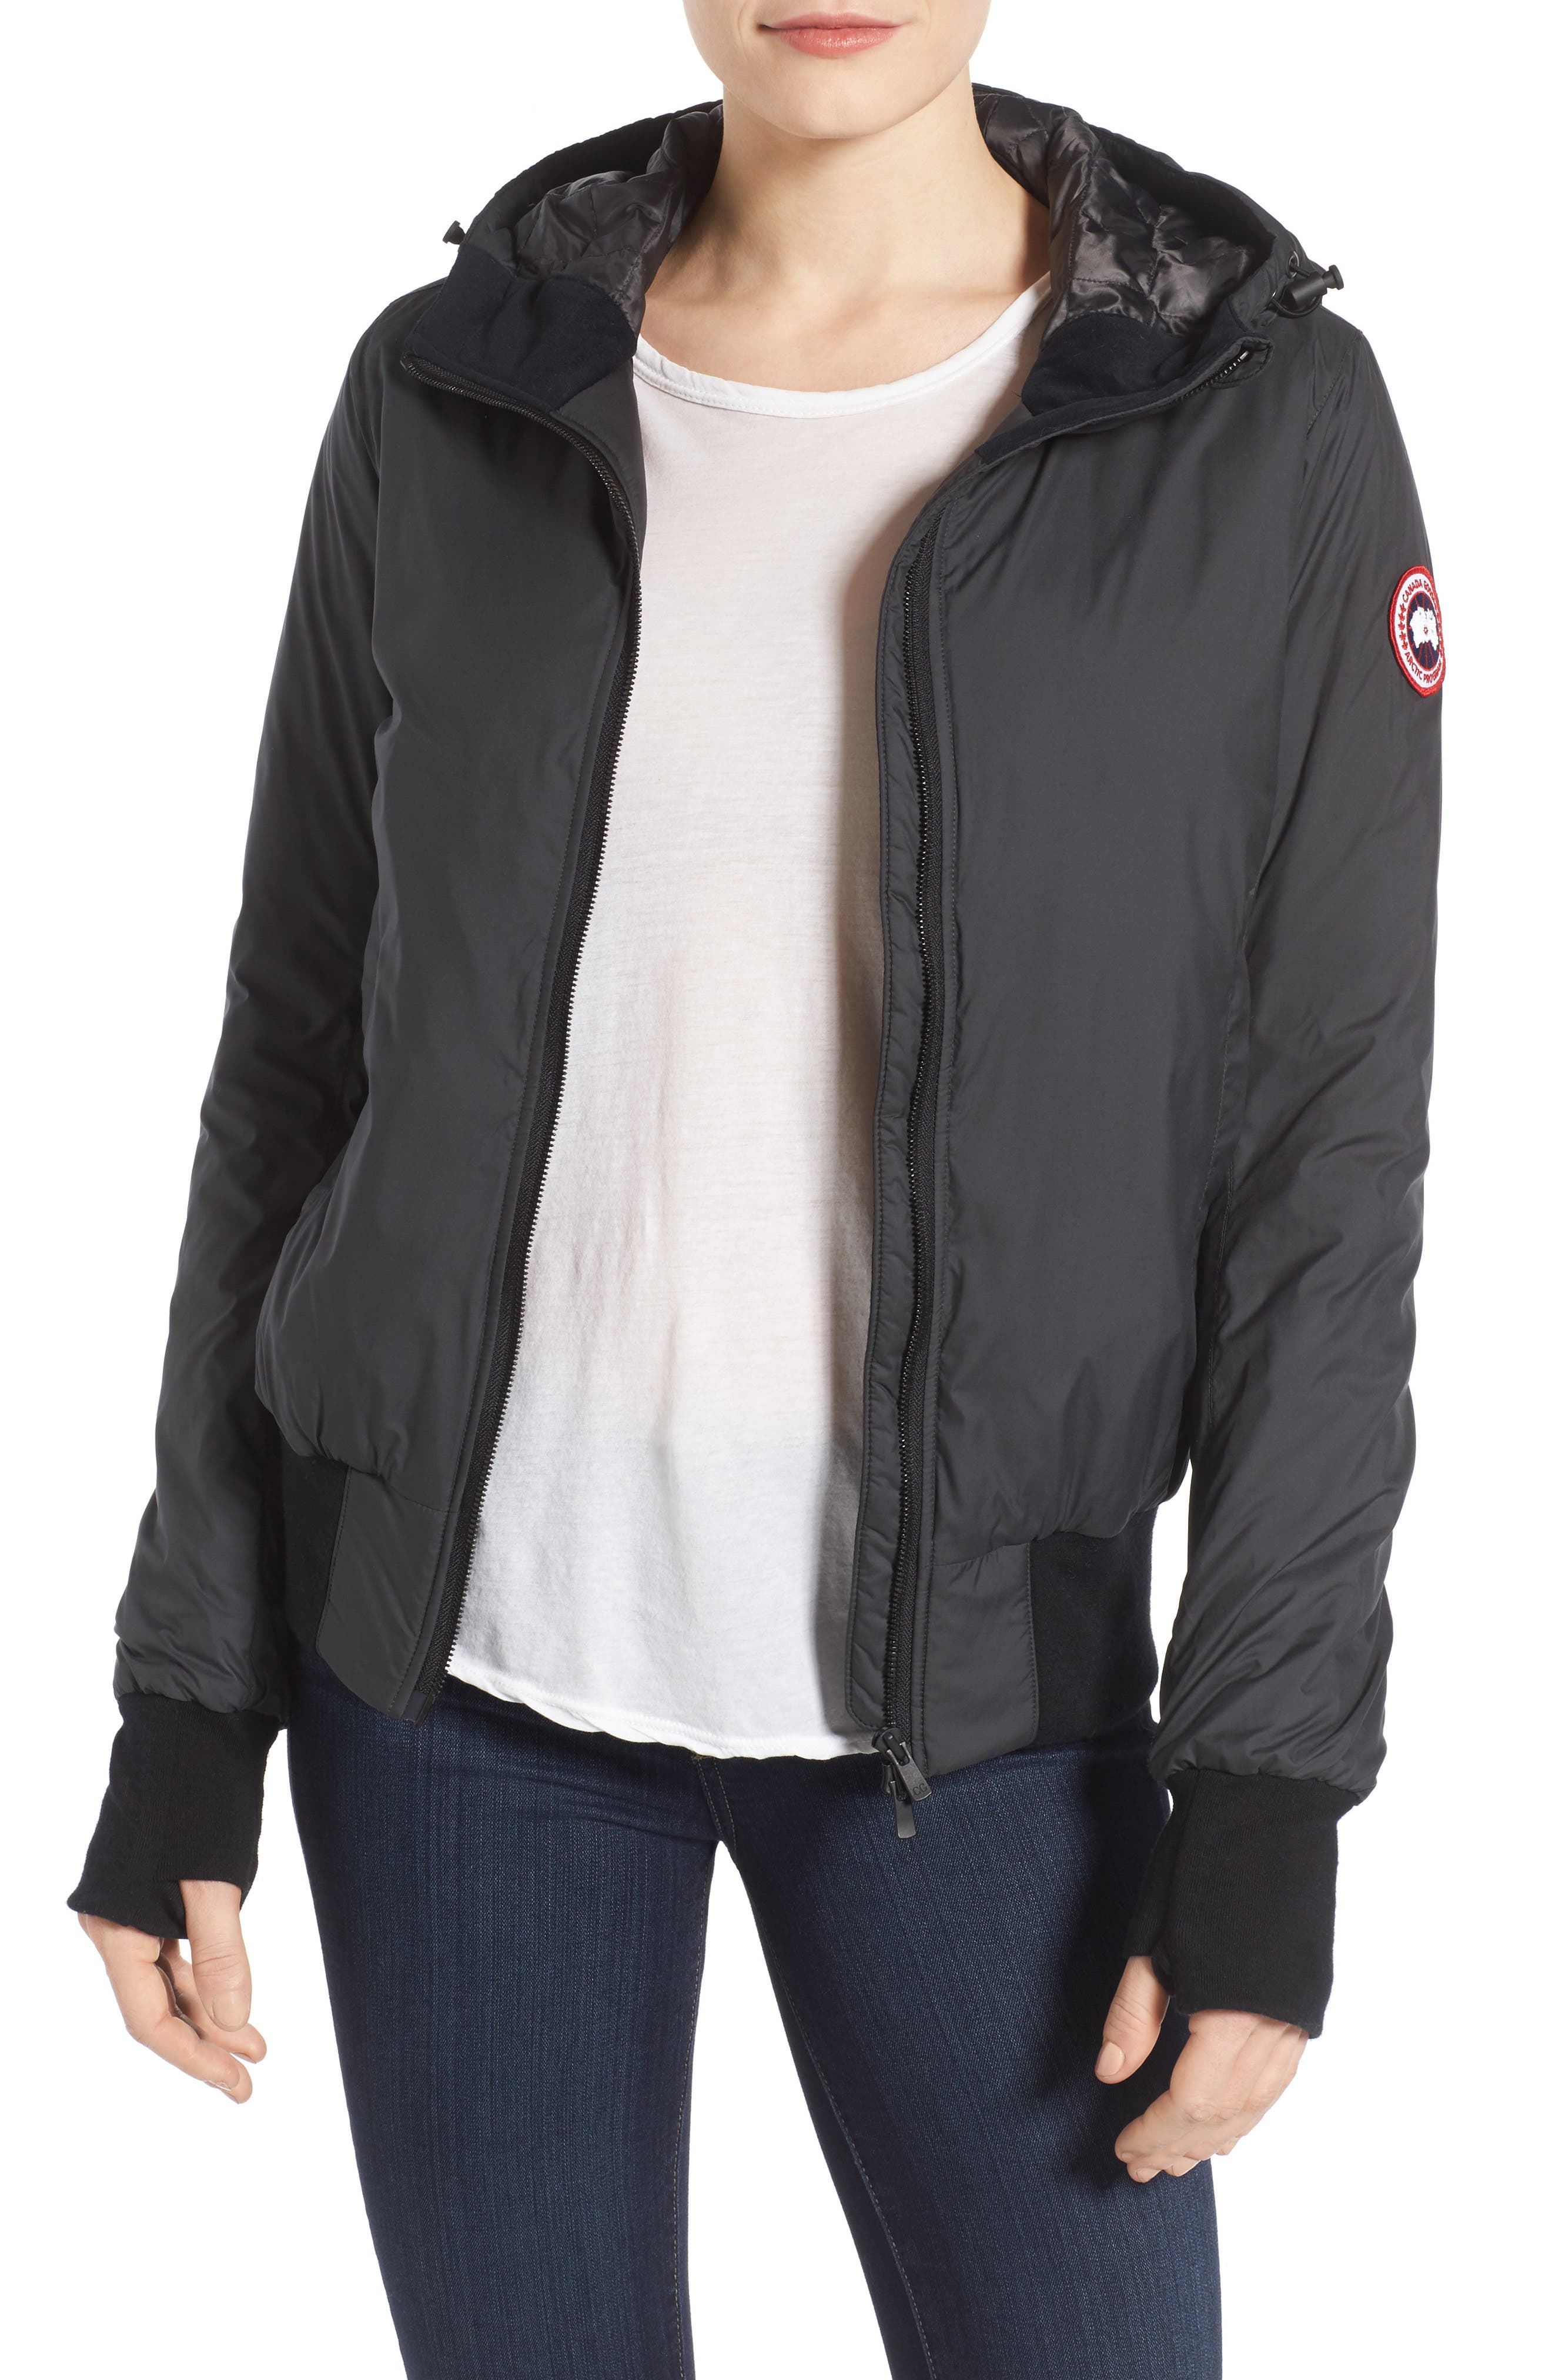 CANADA GOOSE, Dore Goose Down Hooded Jacket, Main thumbnail 1, color, BLACK